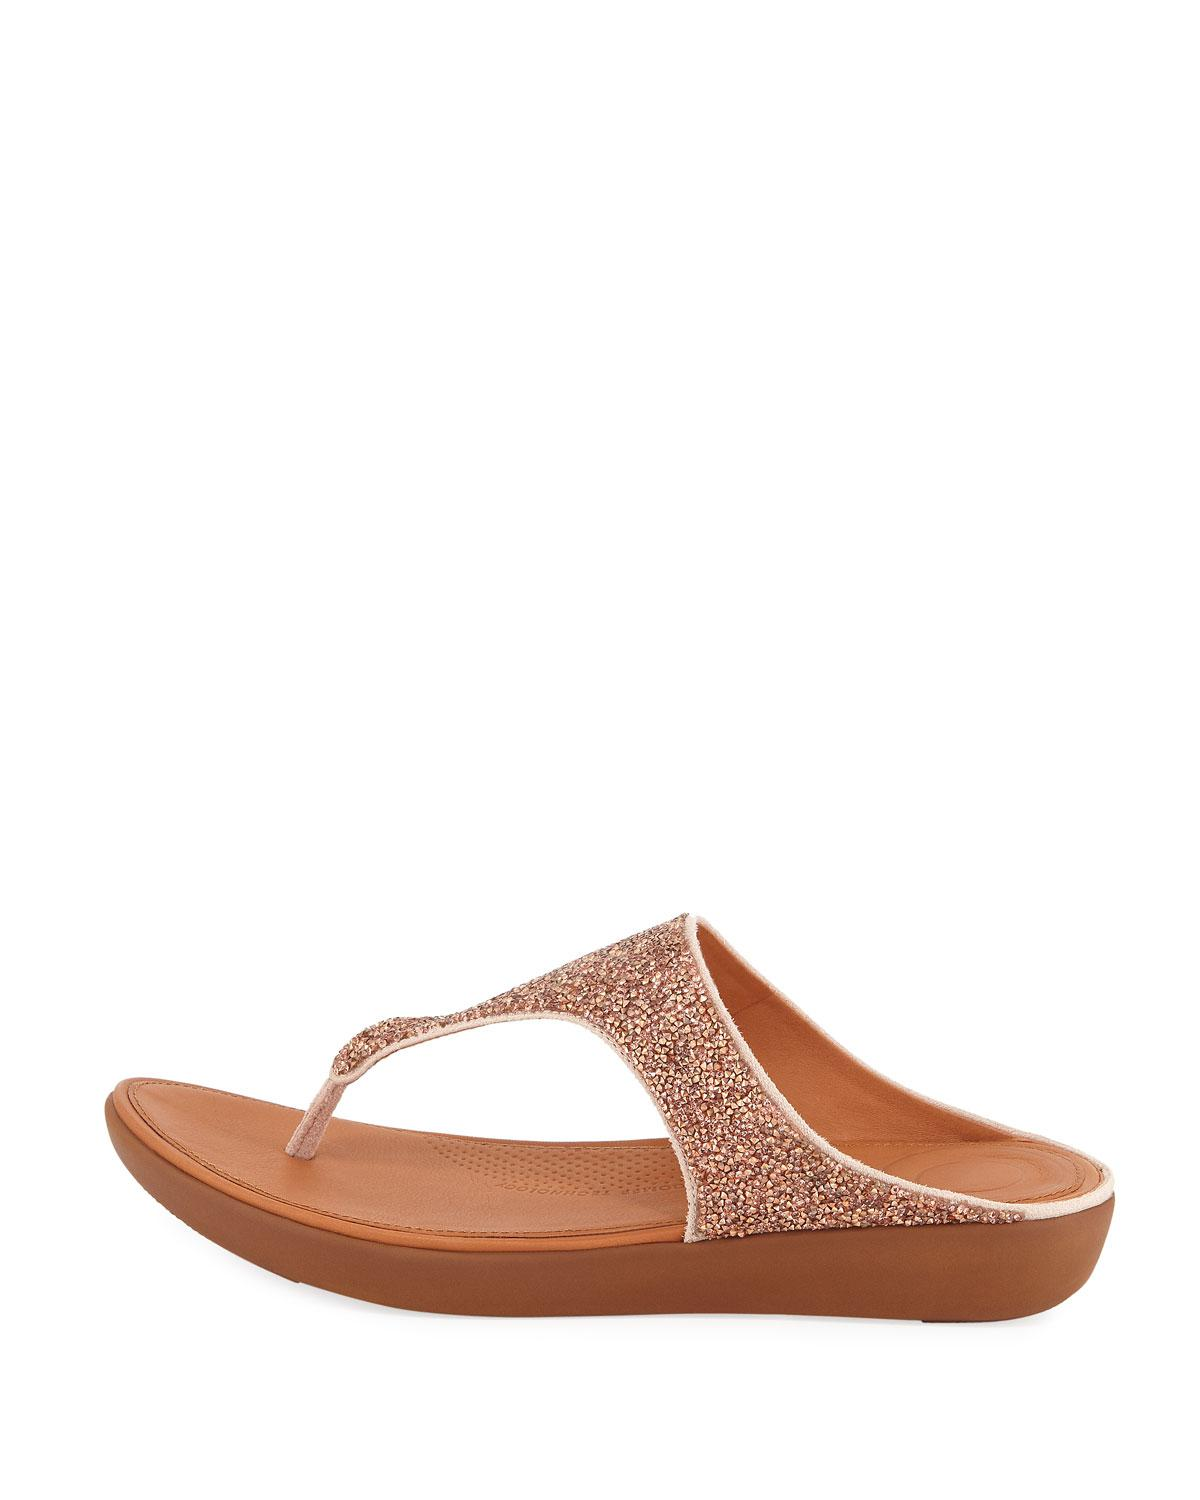 0071bea2b Lyst - Fitflop Banda Ii Quartz Glitter Thong Sandals in Natural